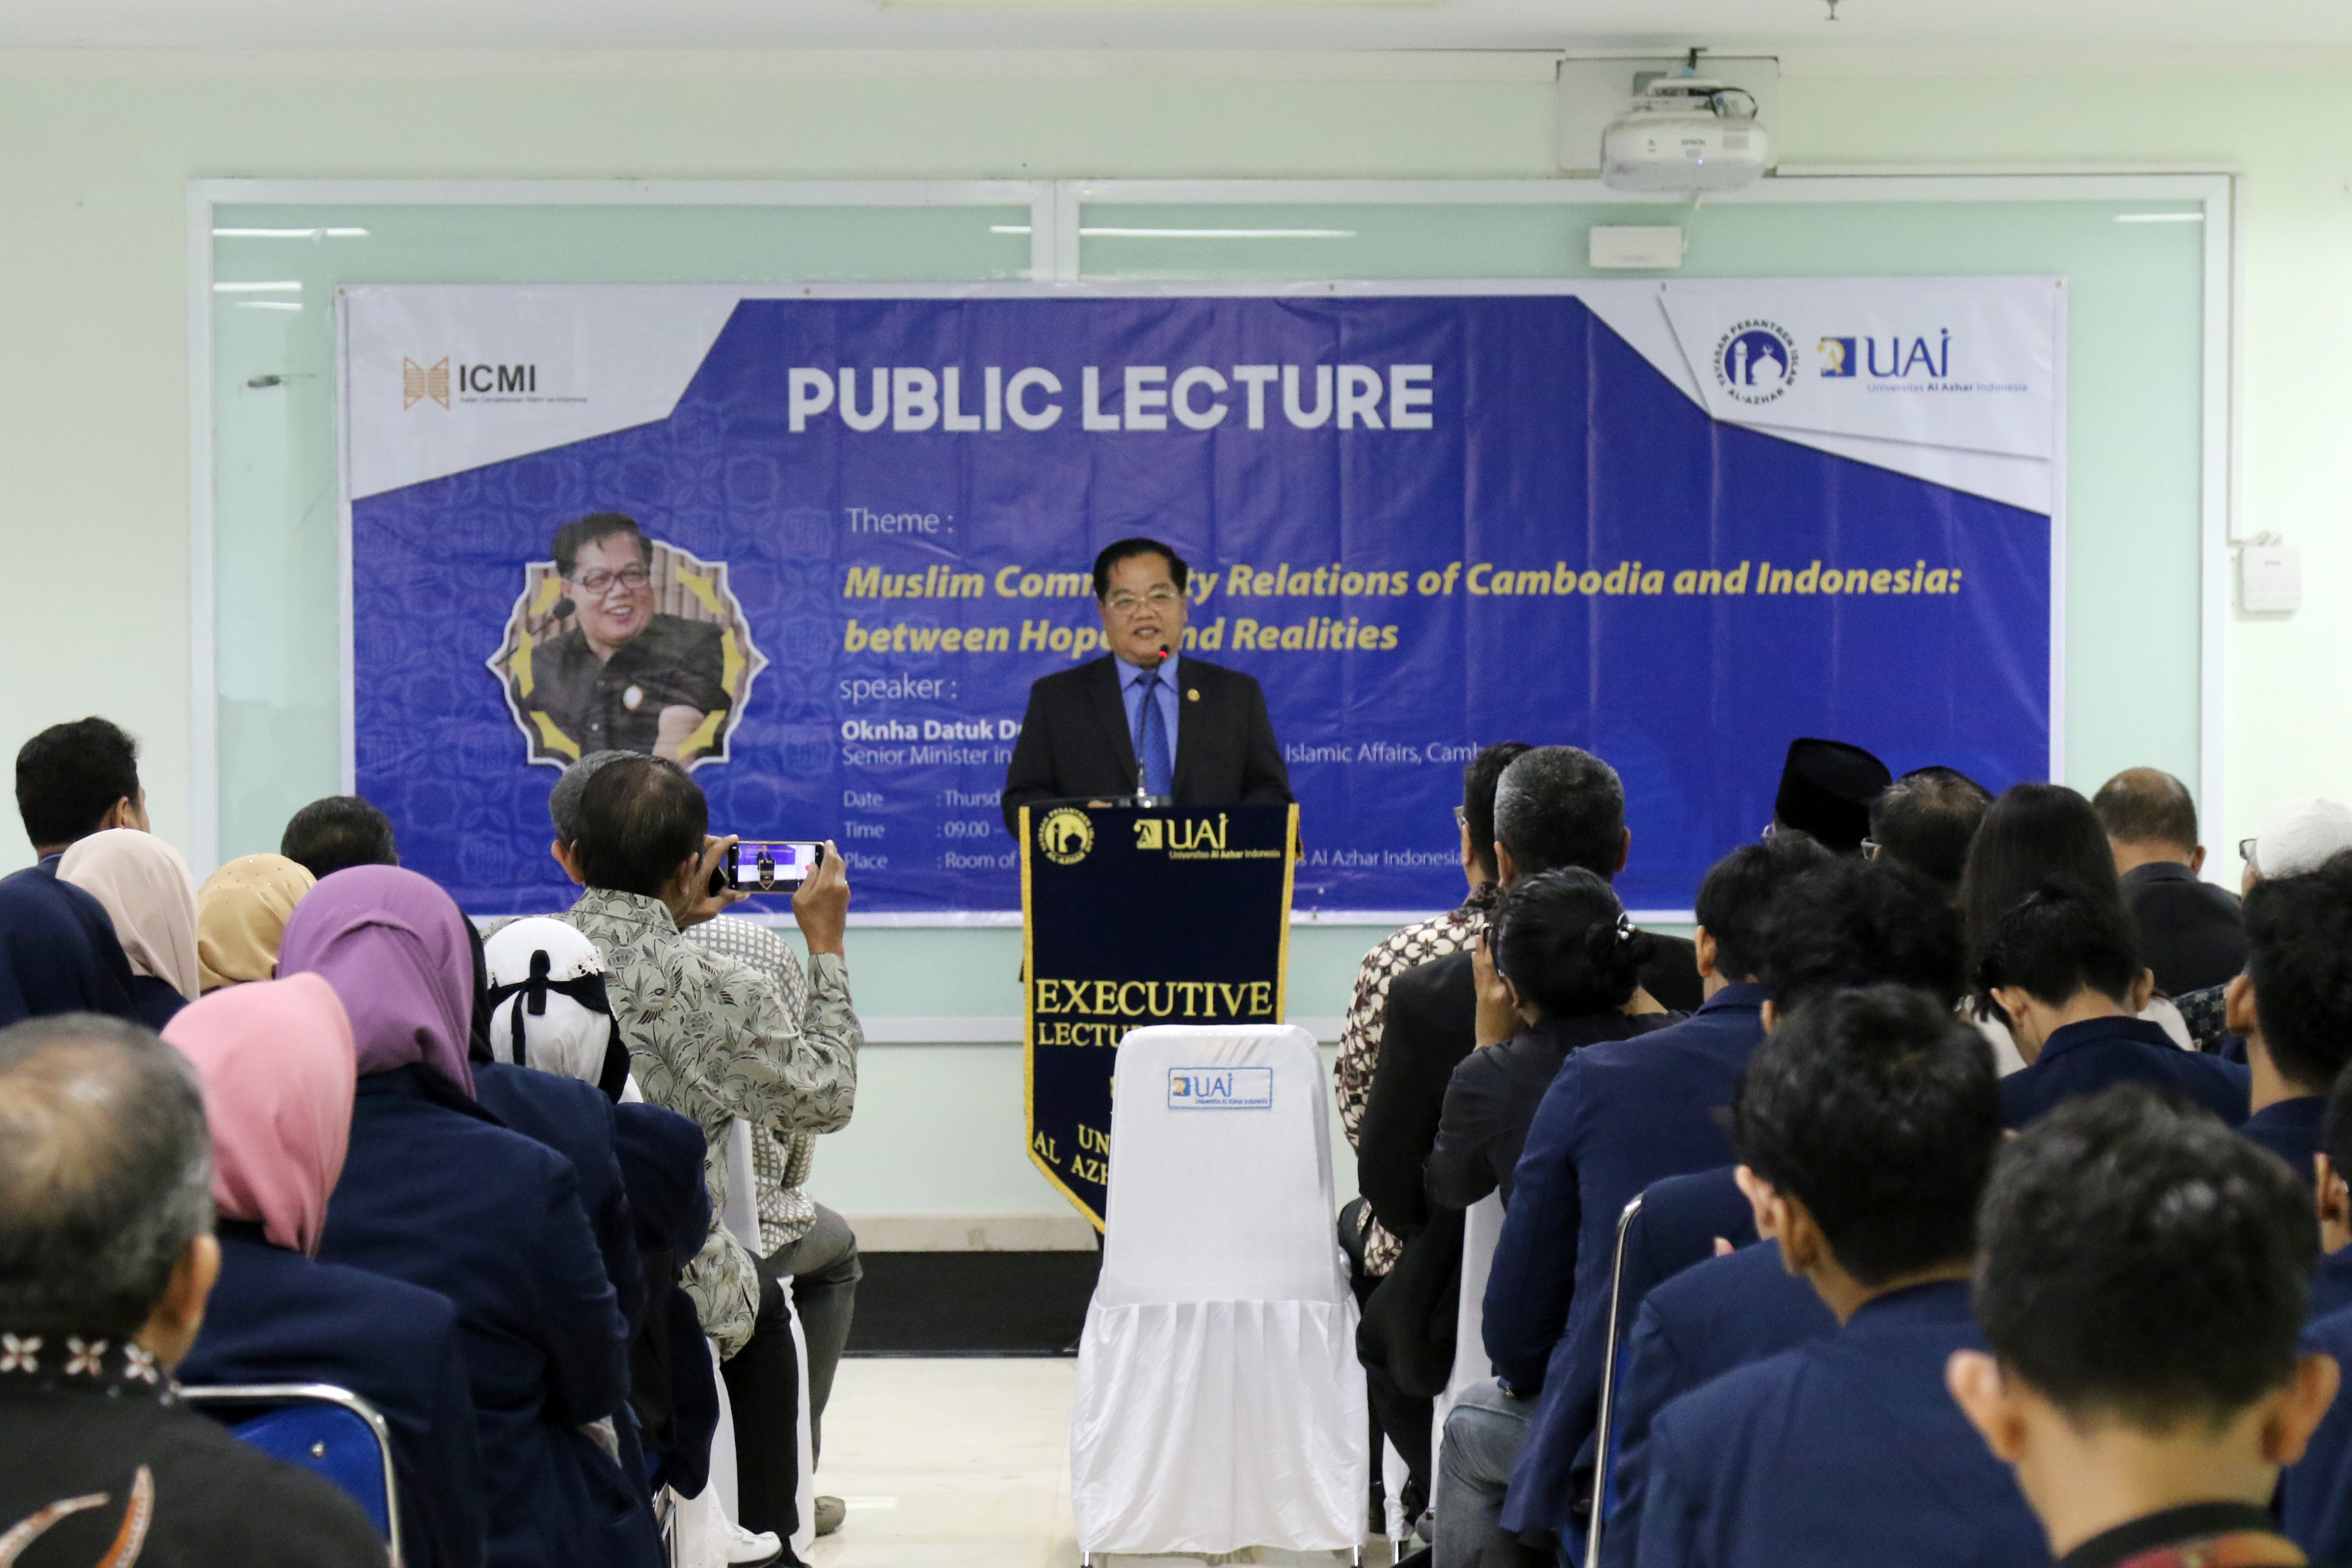 Al Azhar Indonesia University Held An Executive Lecture With Ministry Of Cambodia